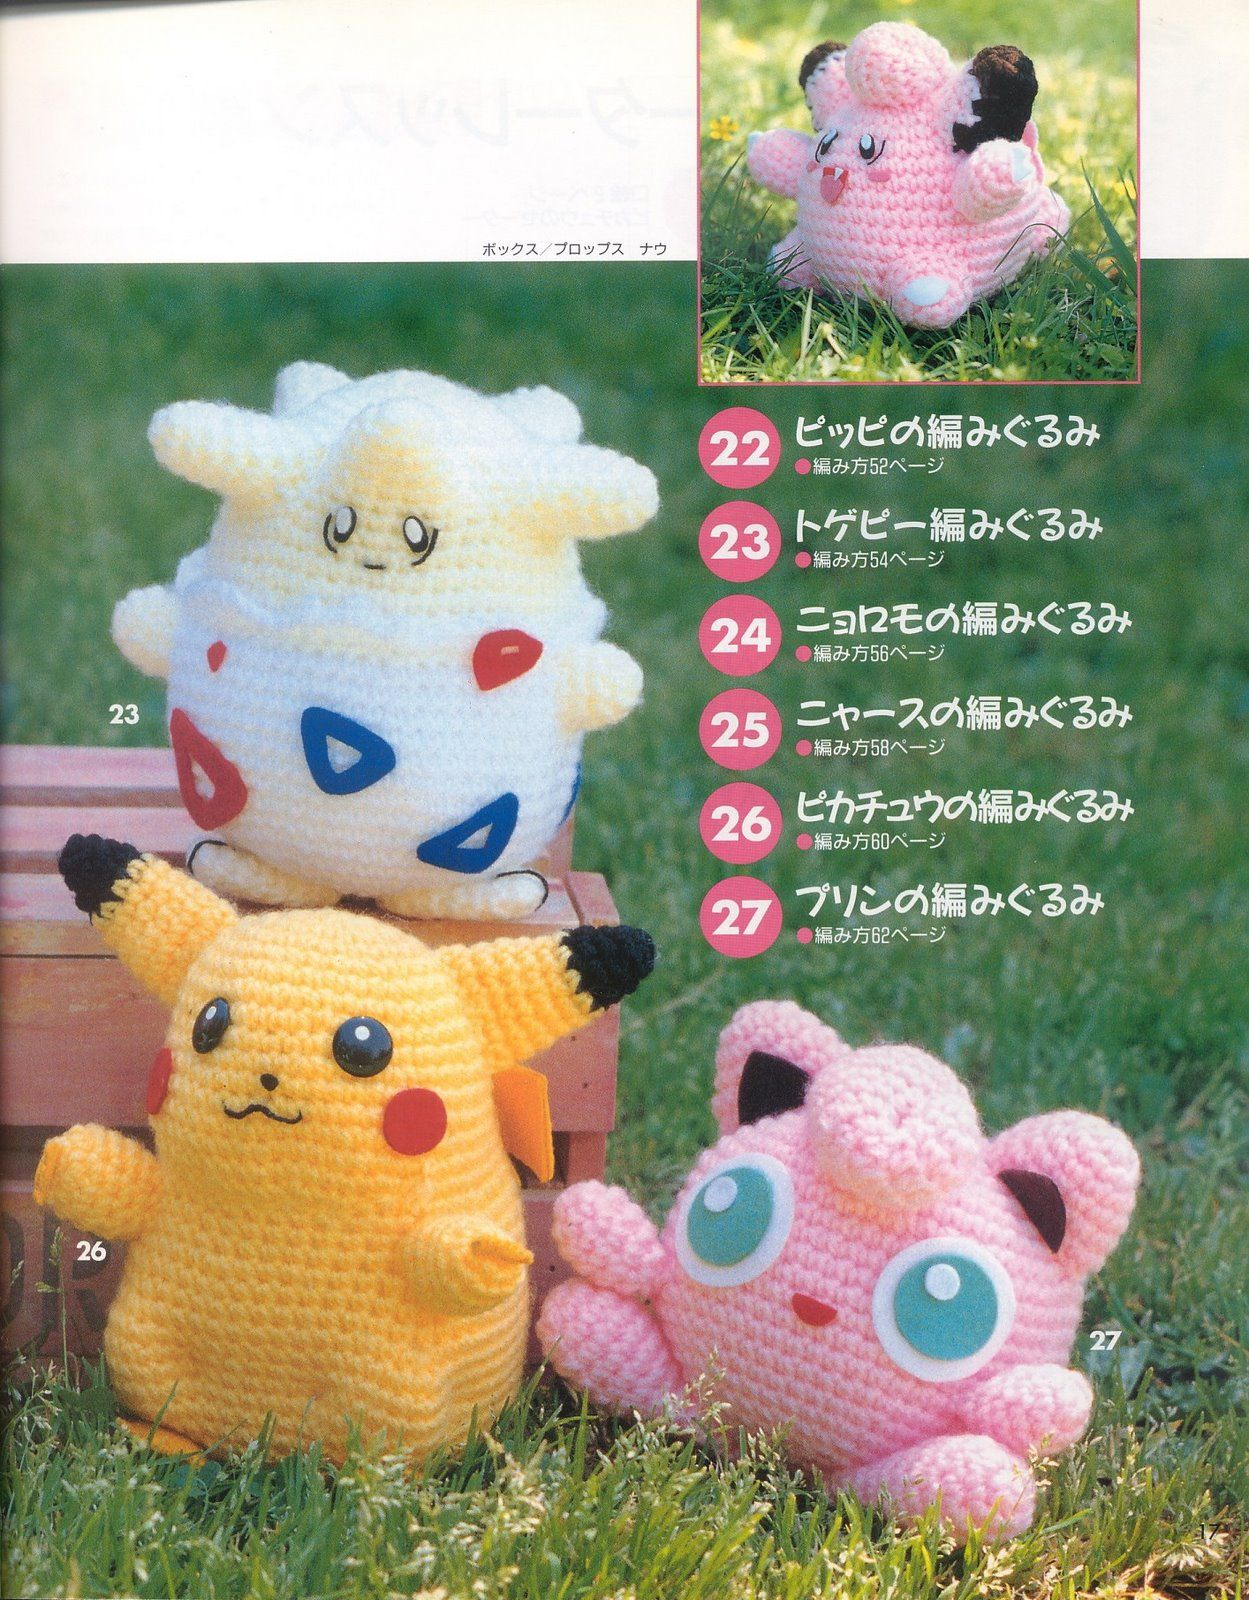 Crochet Patterns Pokemon Characters : Blog de Goanna: Mu?ecos Pokemon en Amigurumi